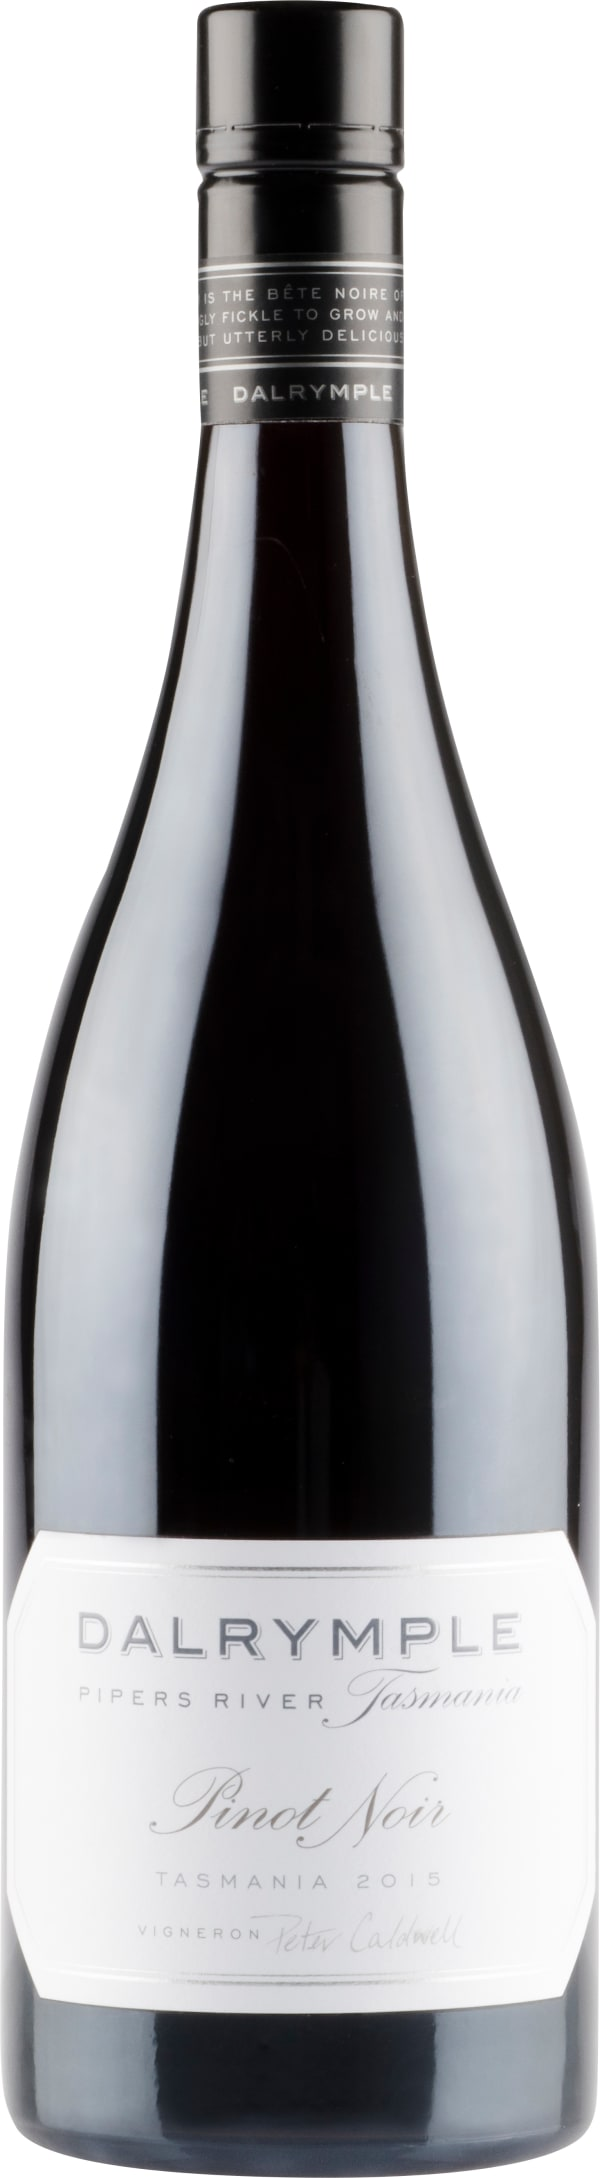 Dalrymple Pipers River Pinot Noir 2015